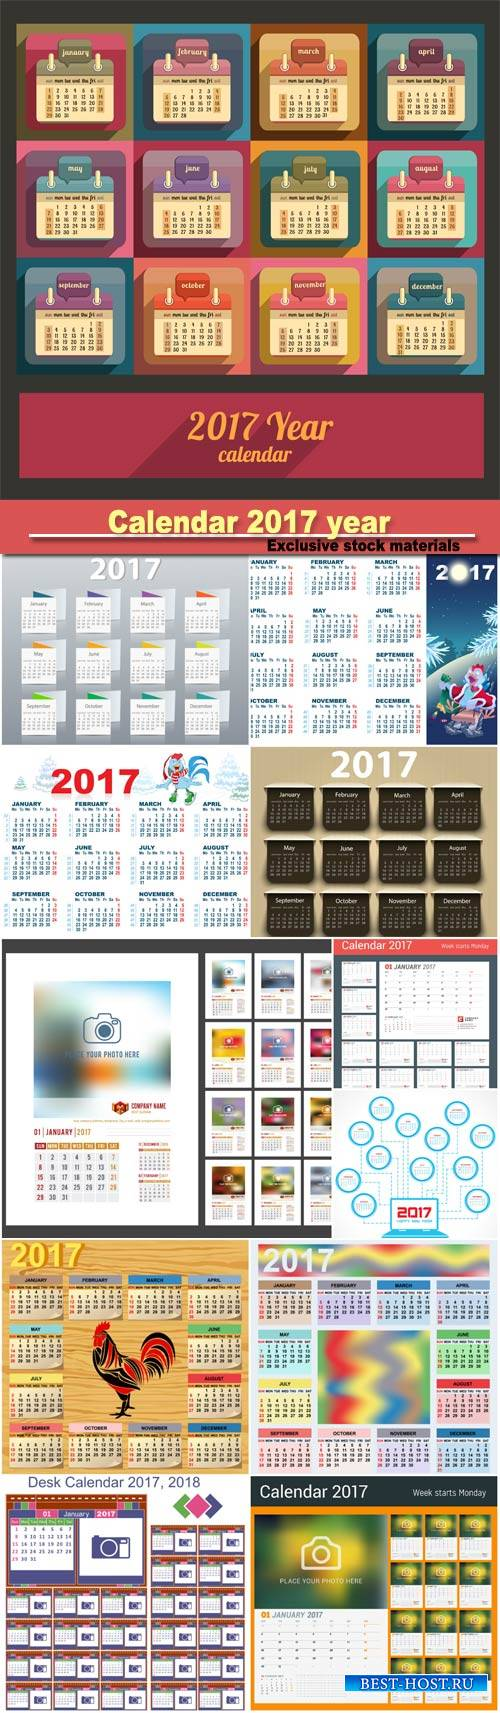 Calendar 2017 year vector design template